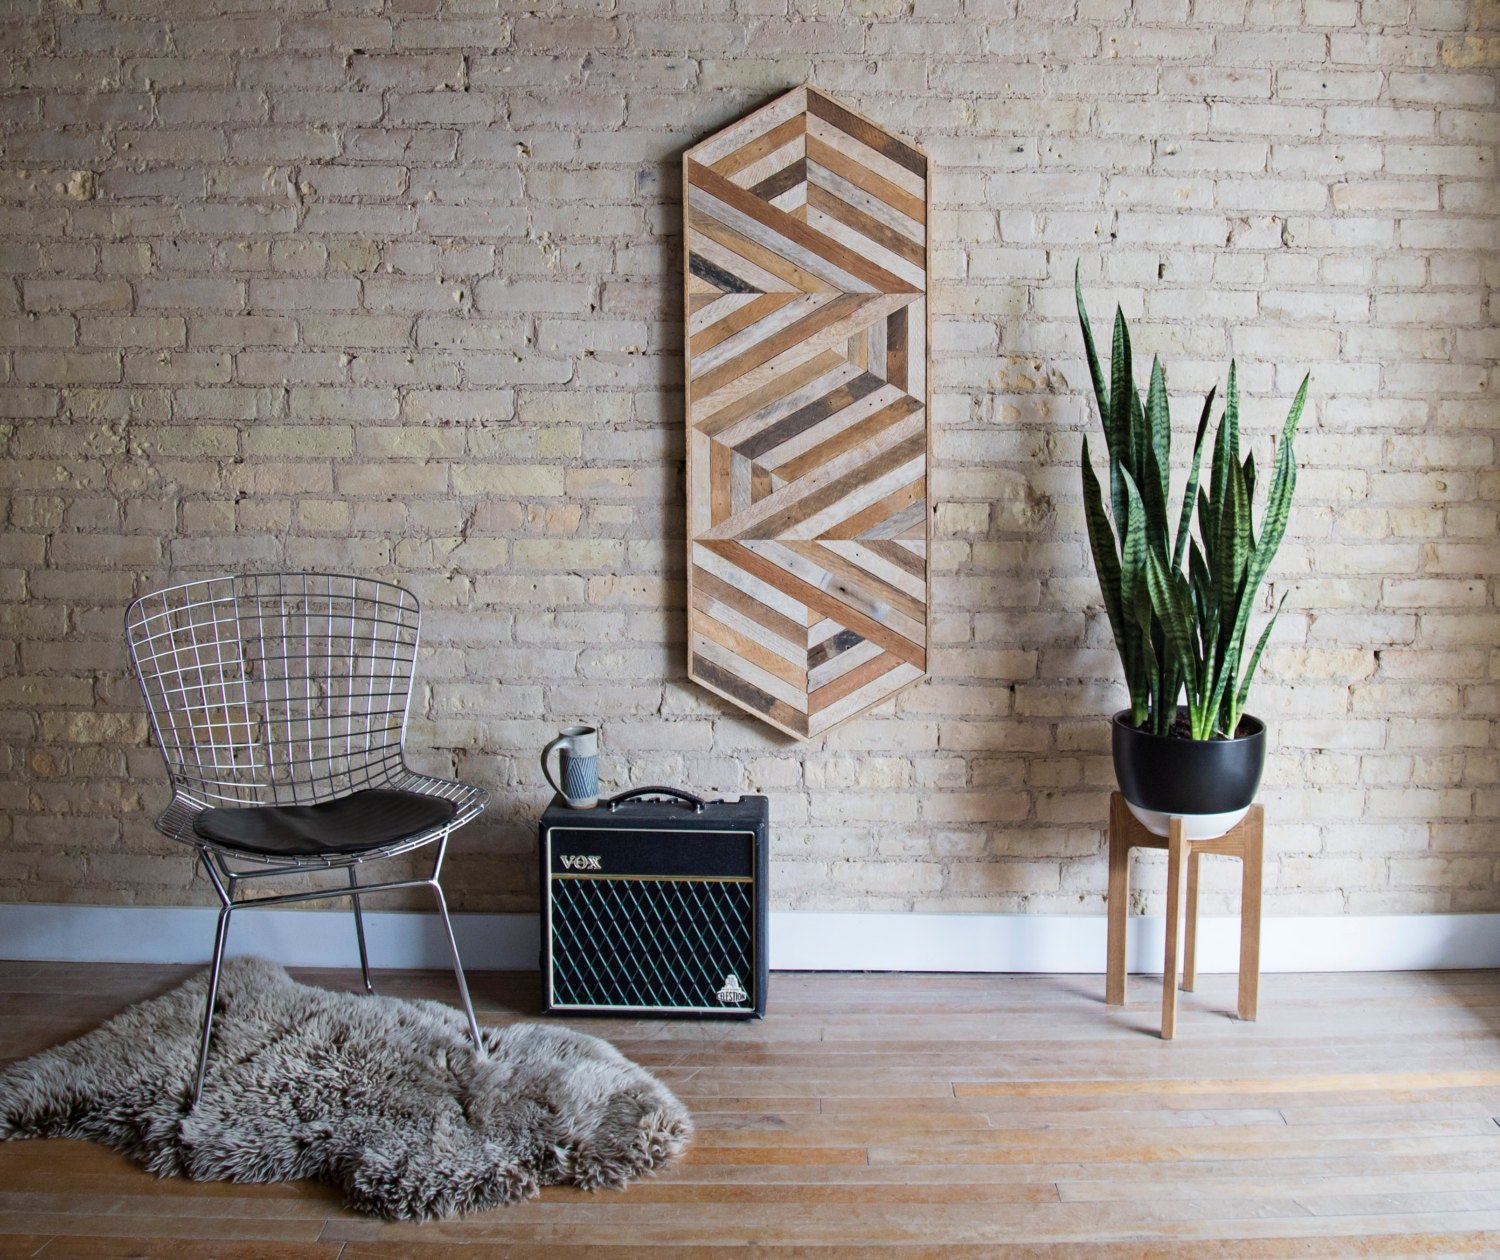 Wood Art Decor Mesmerizing Reclaimed Wood Wall Art  Wood Wall Art  Reclaimed Wood  Wood Design Ideas